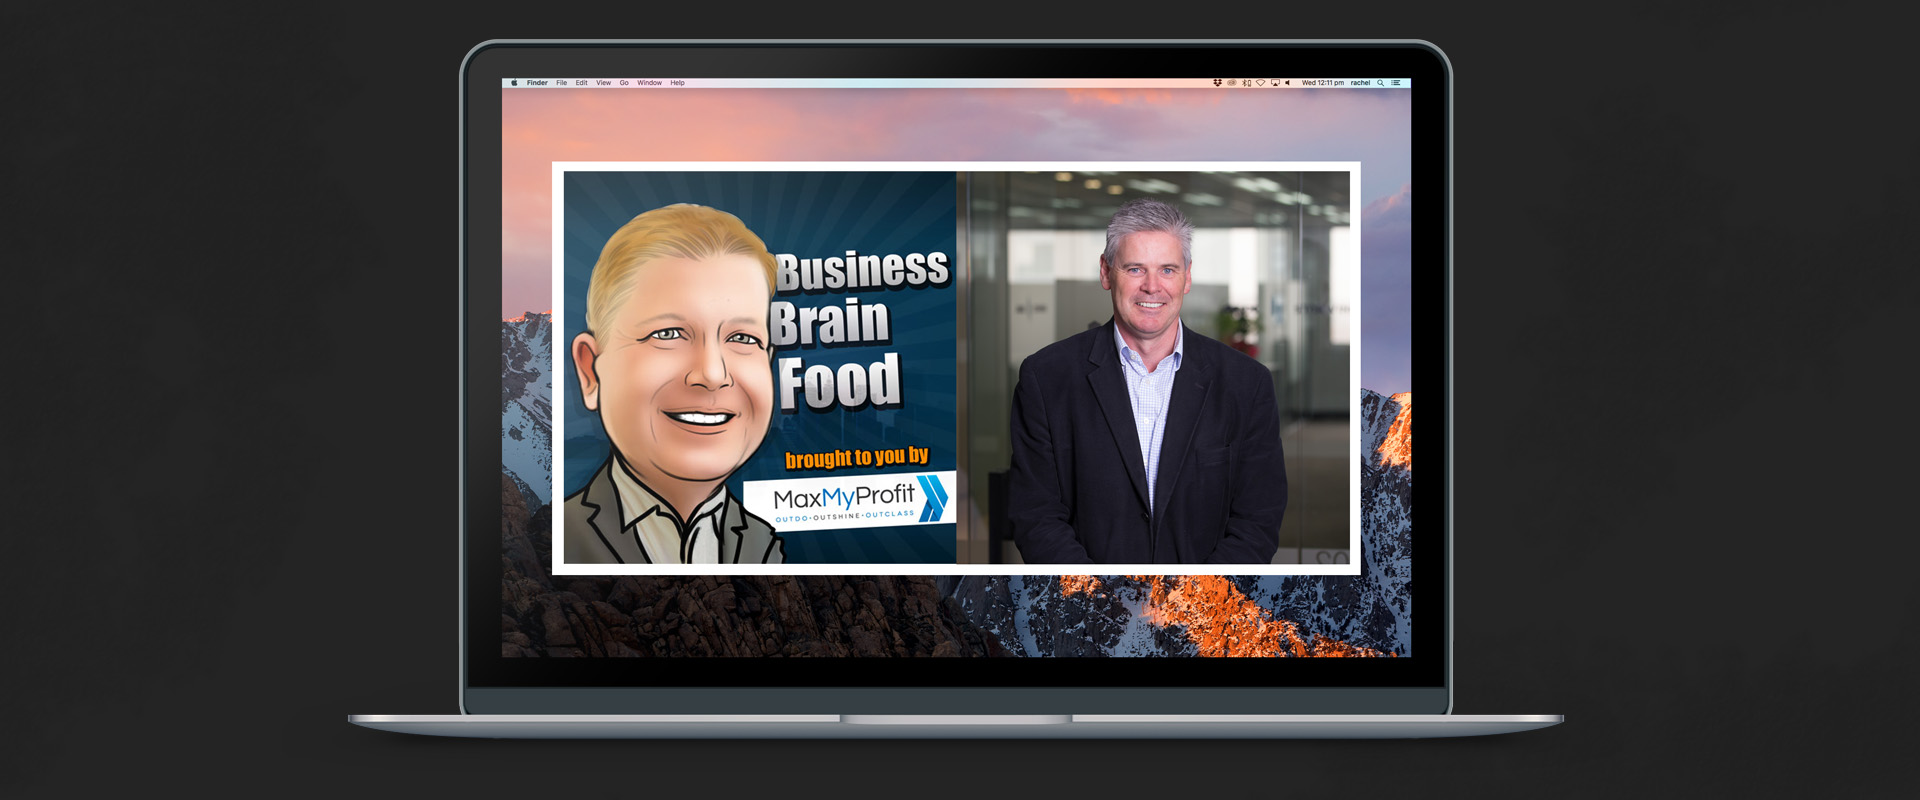 Business Brain Food's logo and Damian Kernahan's image side-by-side on a laptop screen, showing them together on Ben Fewtrell's Brainfood Podcast